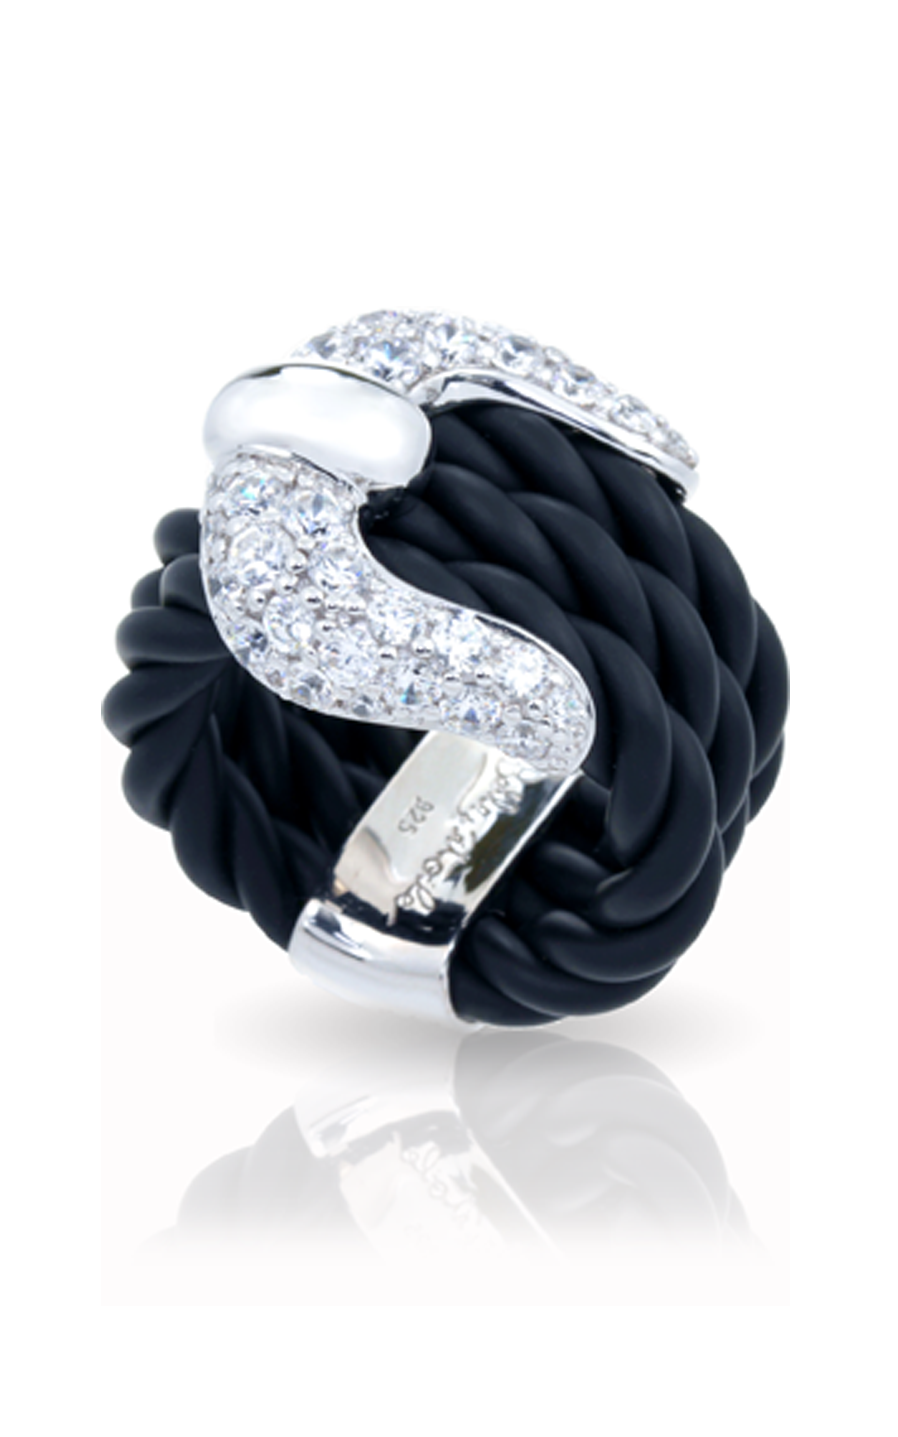 Belle Etoile Lasso Black Ring 01051010101-7 product image